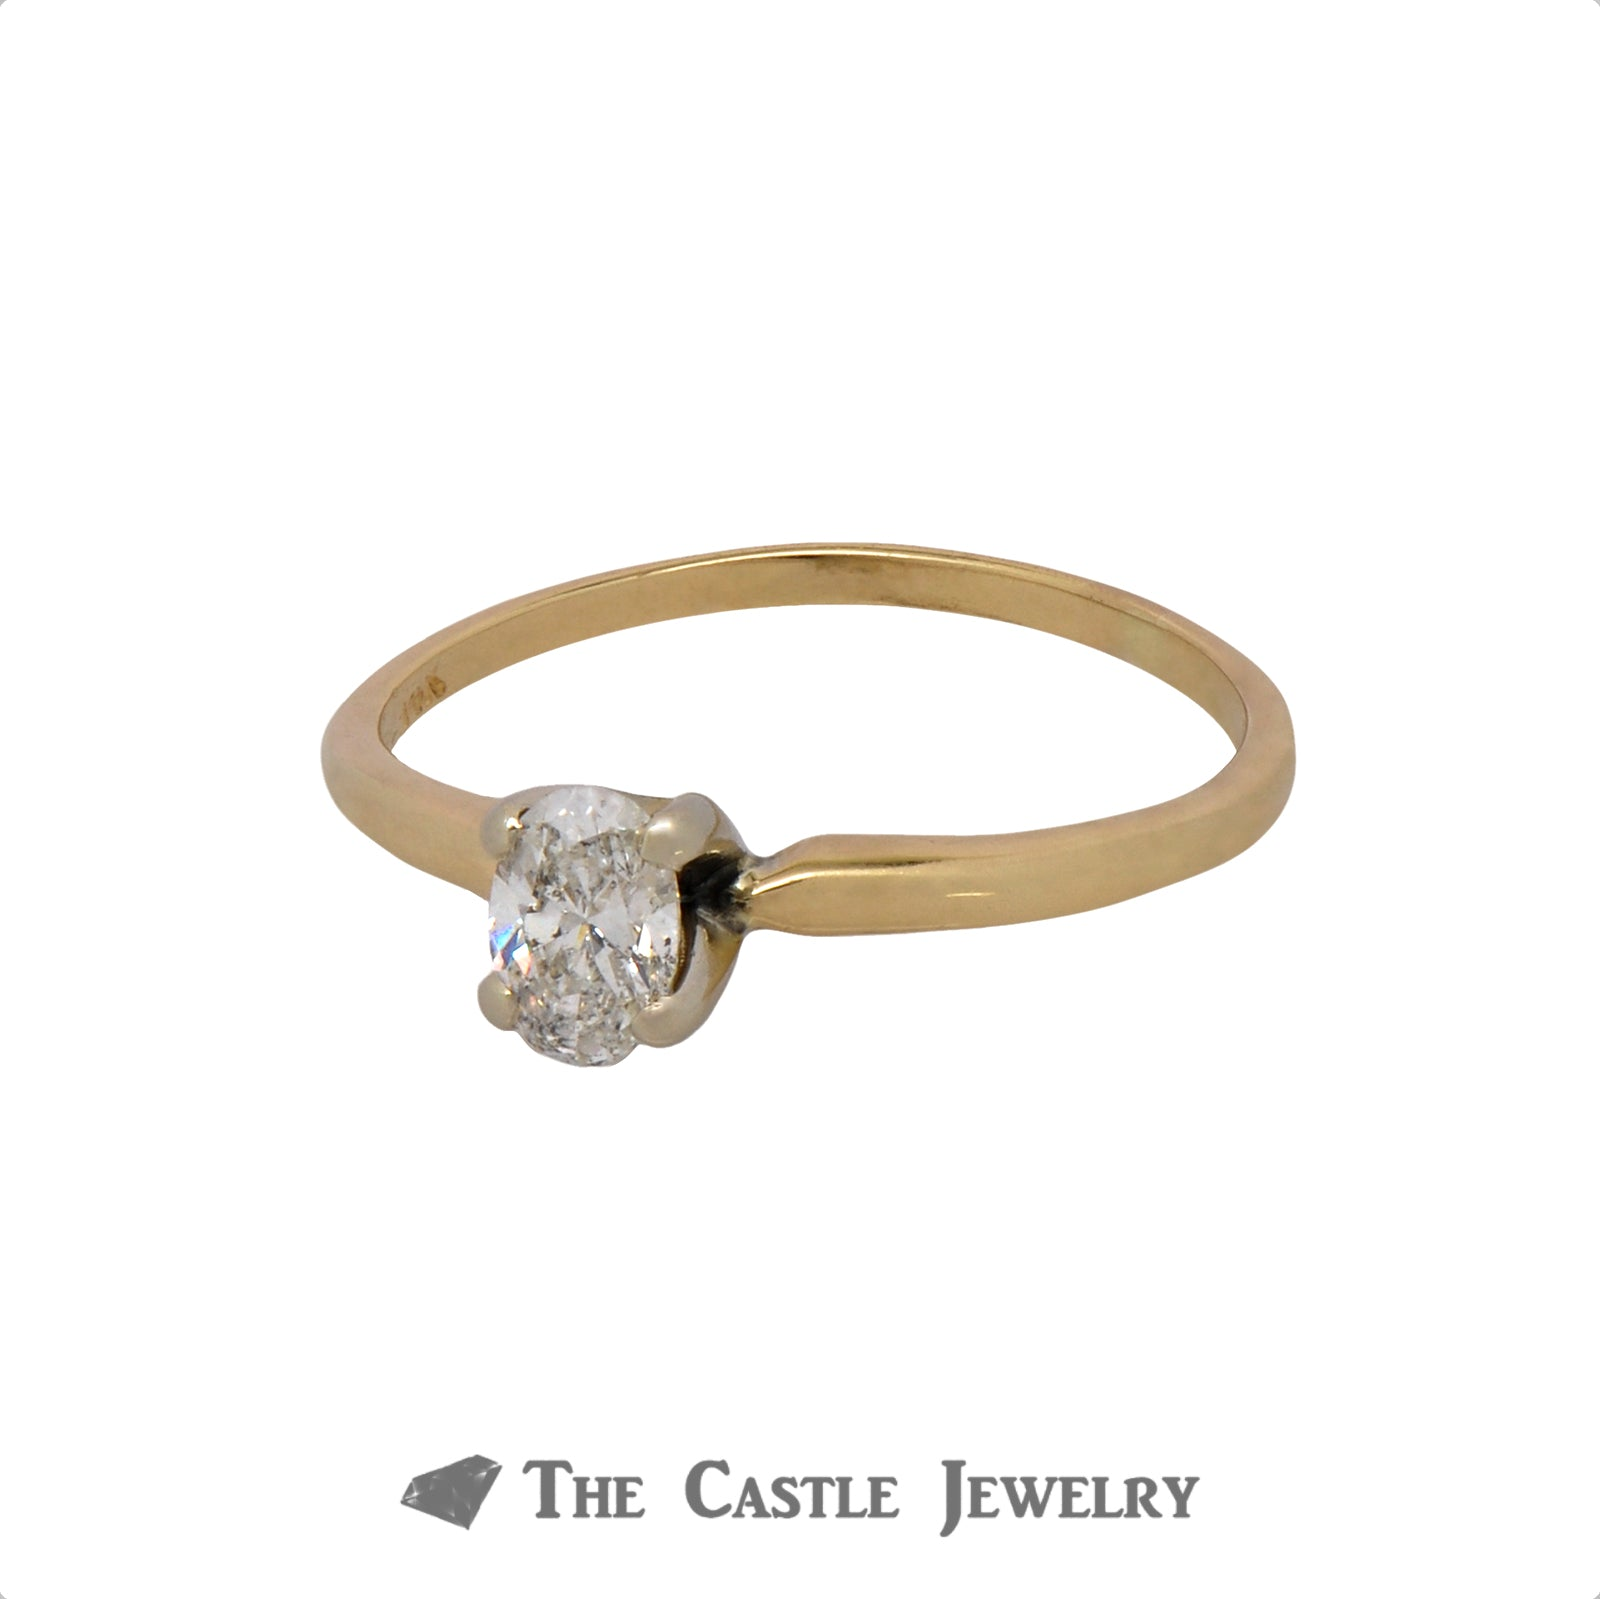 Oval Cut .45ct Diamond Solitaire Engagement Ring in 14k Yellow Gold-2